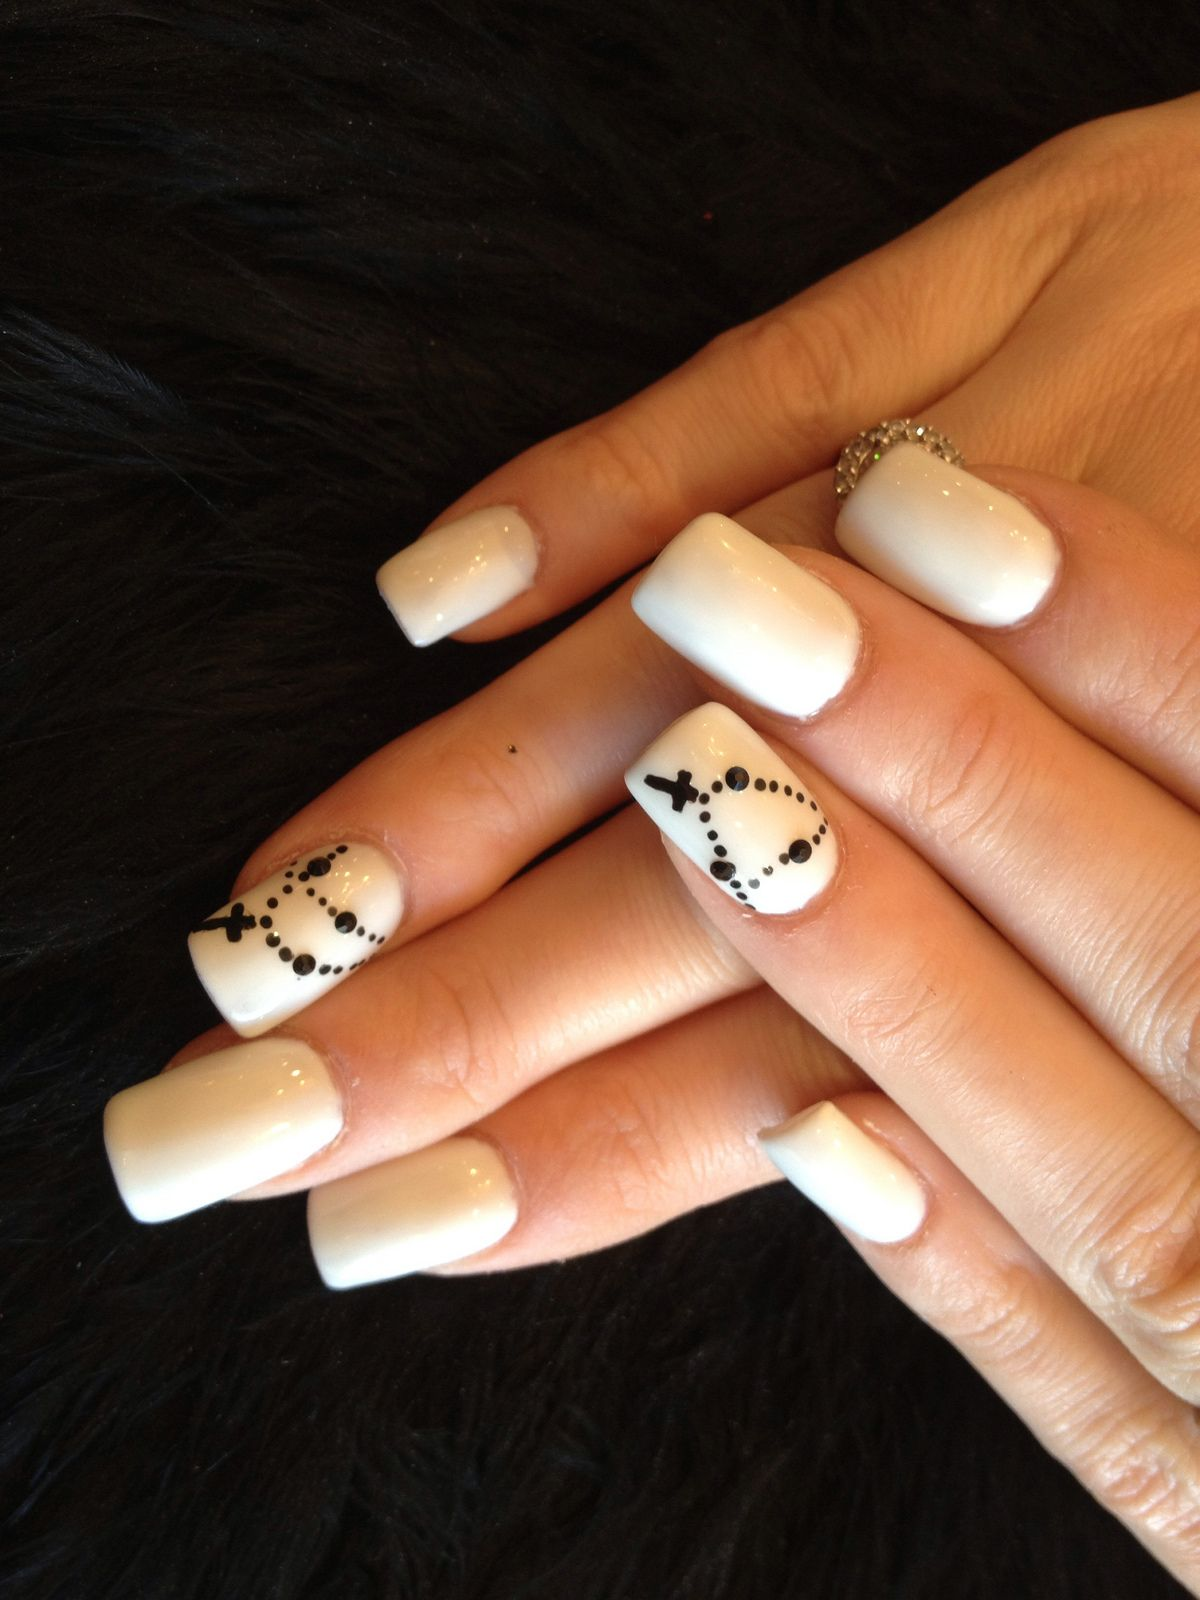 Simple Nails Styles: Simple Acrylic Nail Art Design With Black Chain Cross